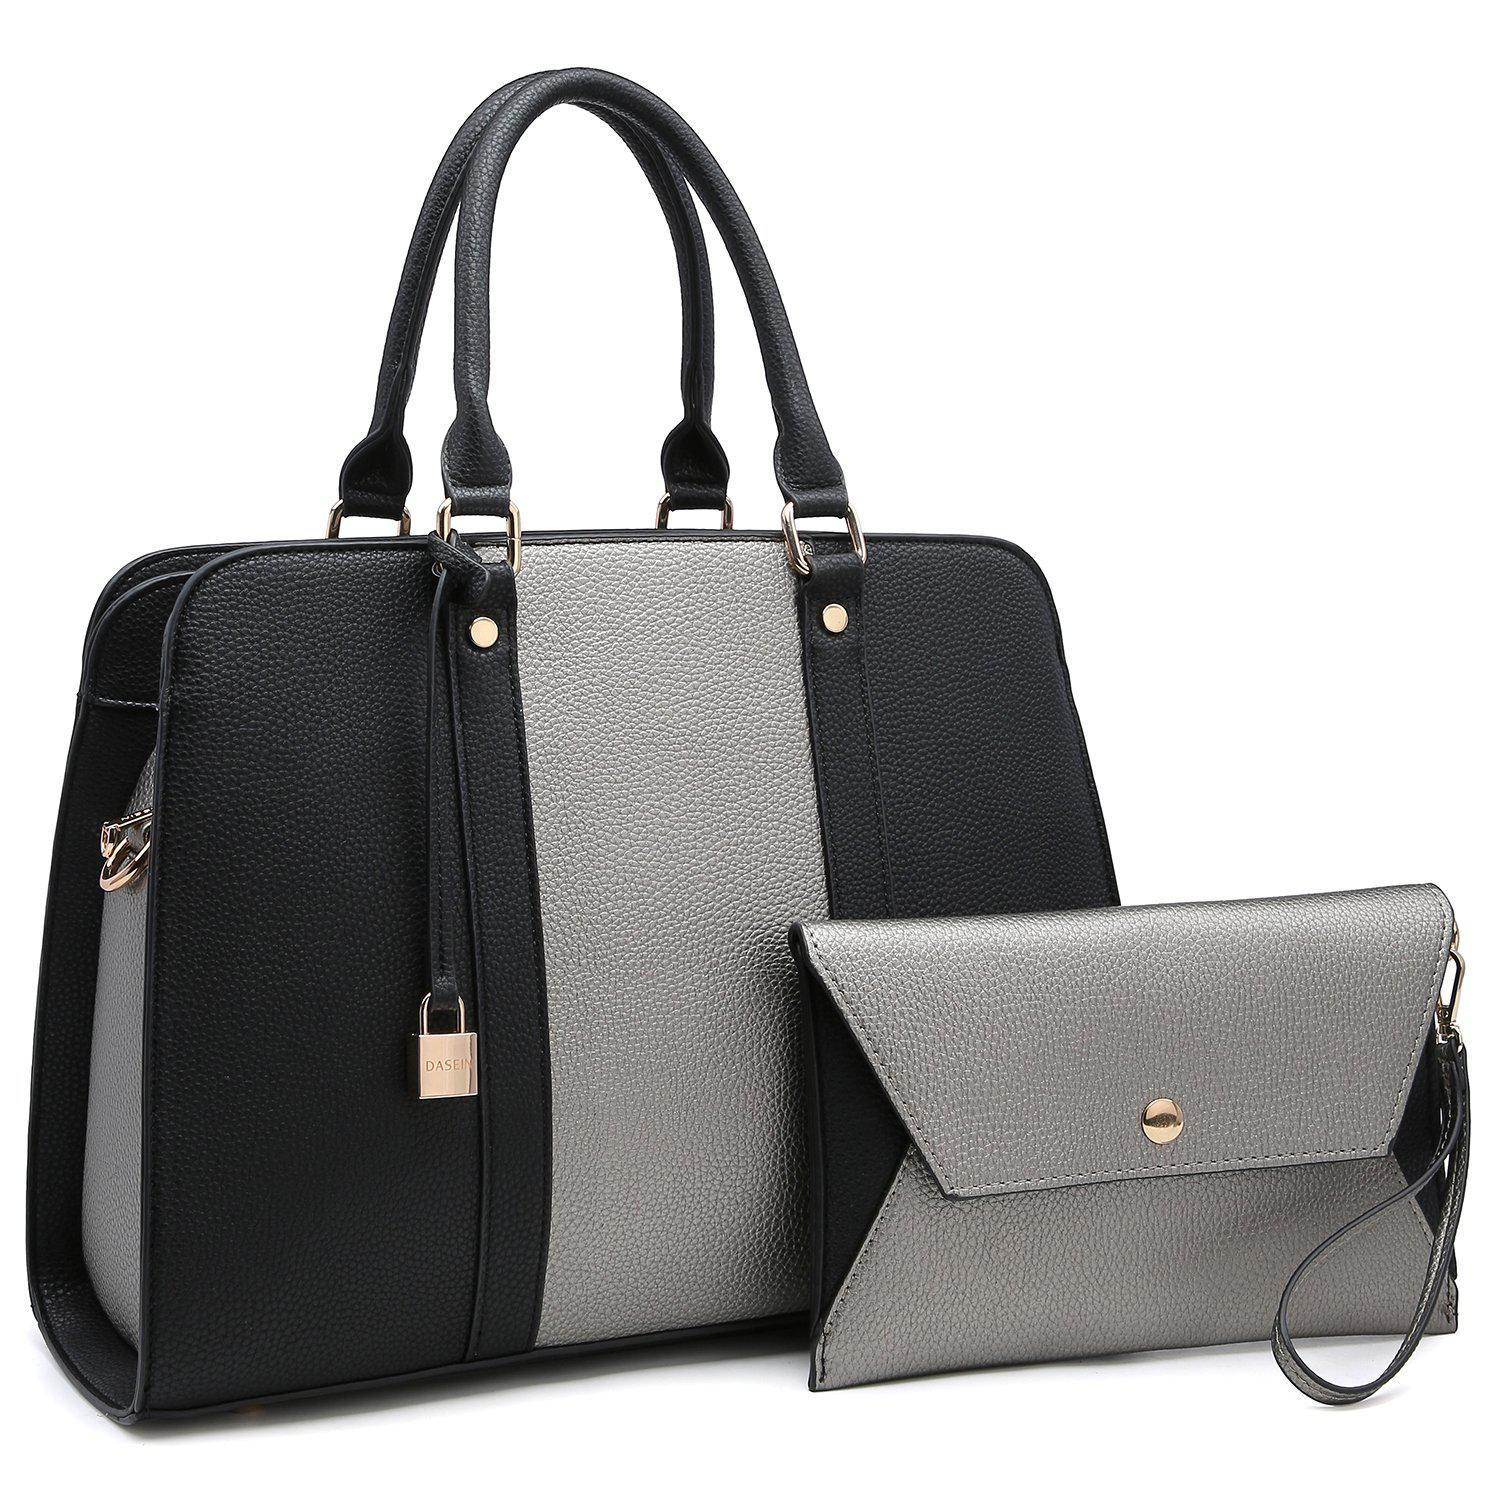 Two-Tone Padlock Satchel with Matching Wristlet